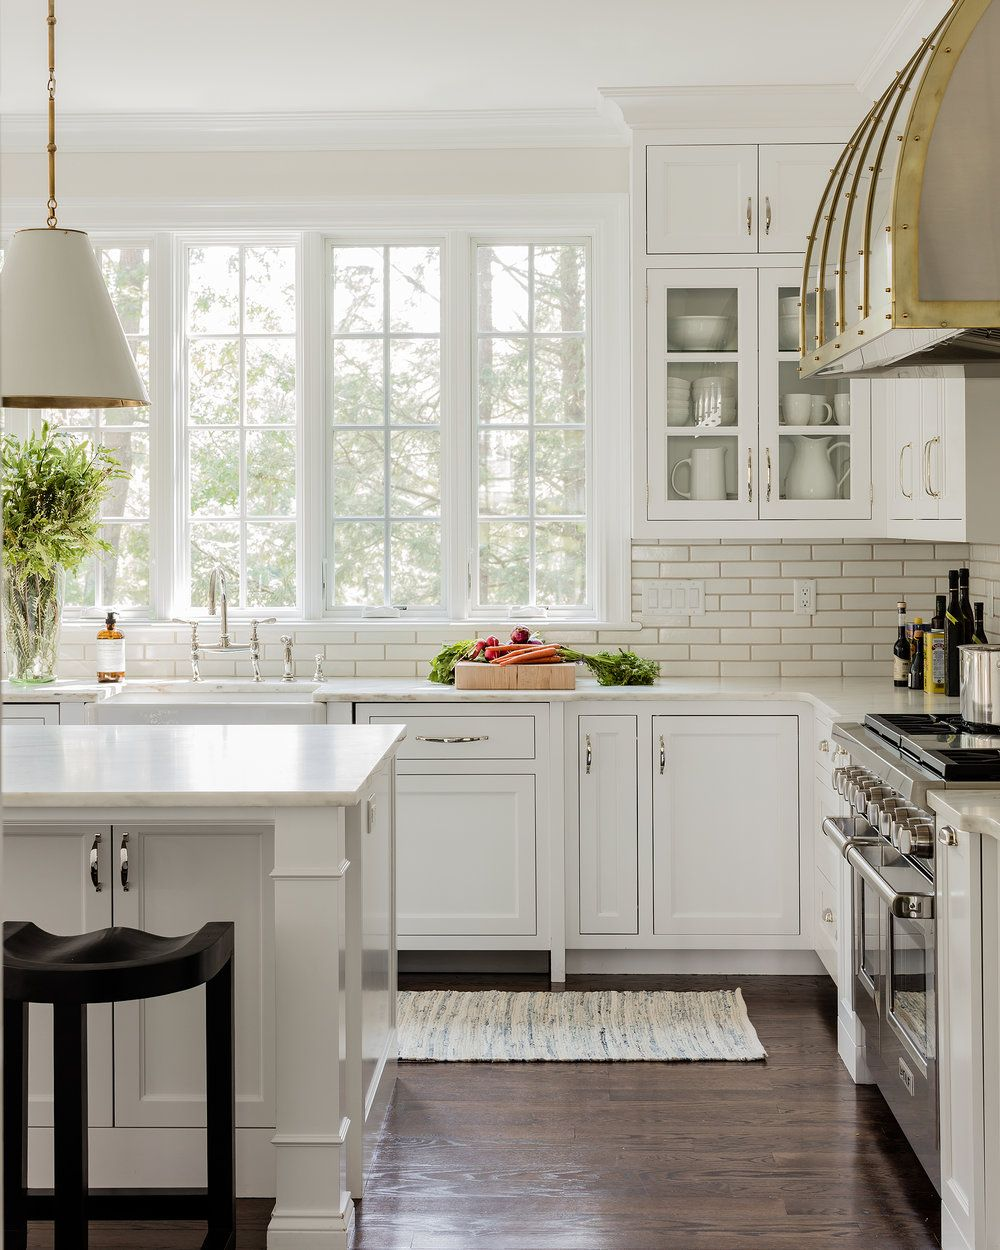 Pin by thepinkdream on the dream kitchen pinterest kitchens